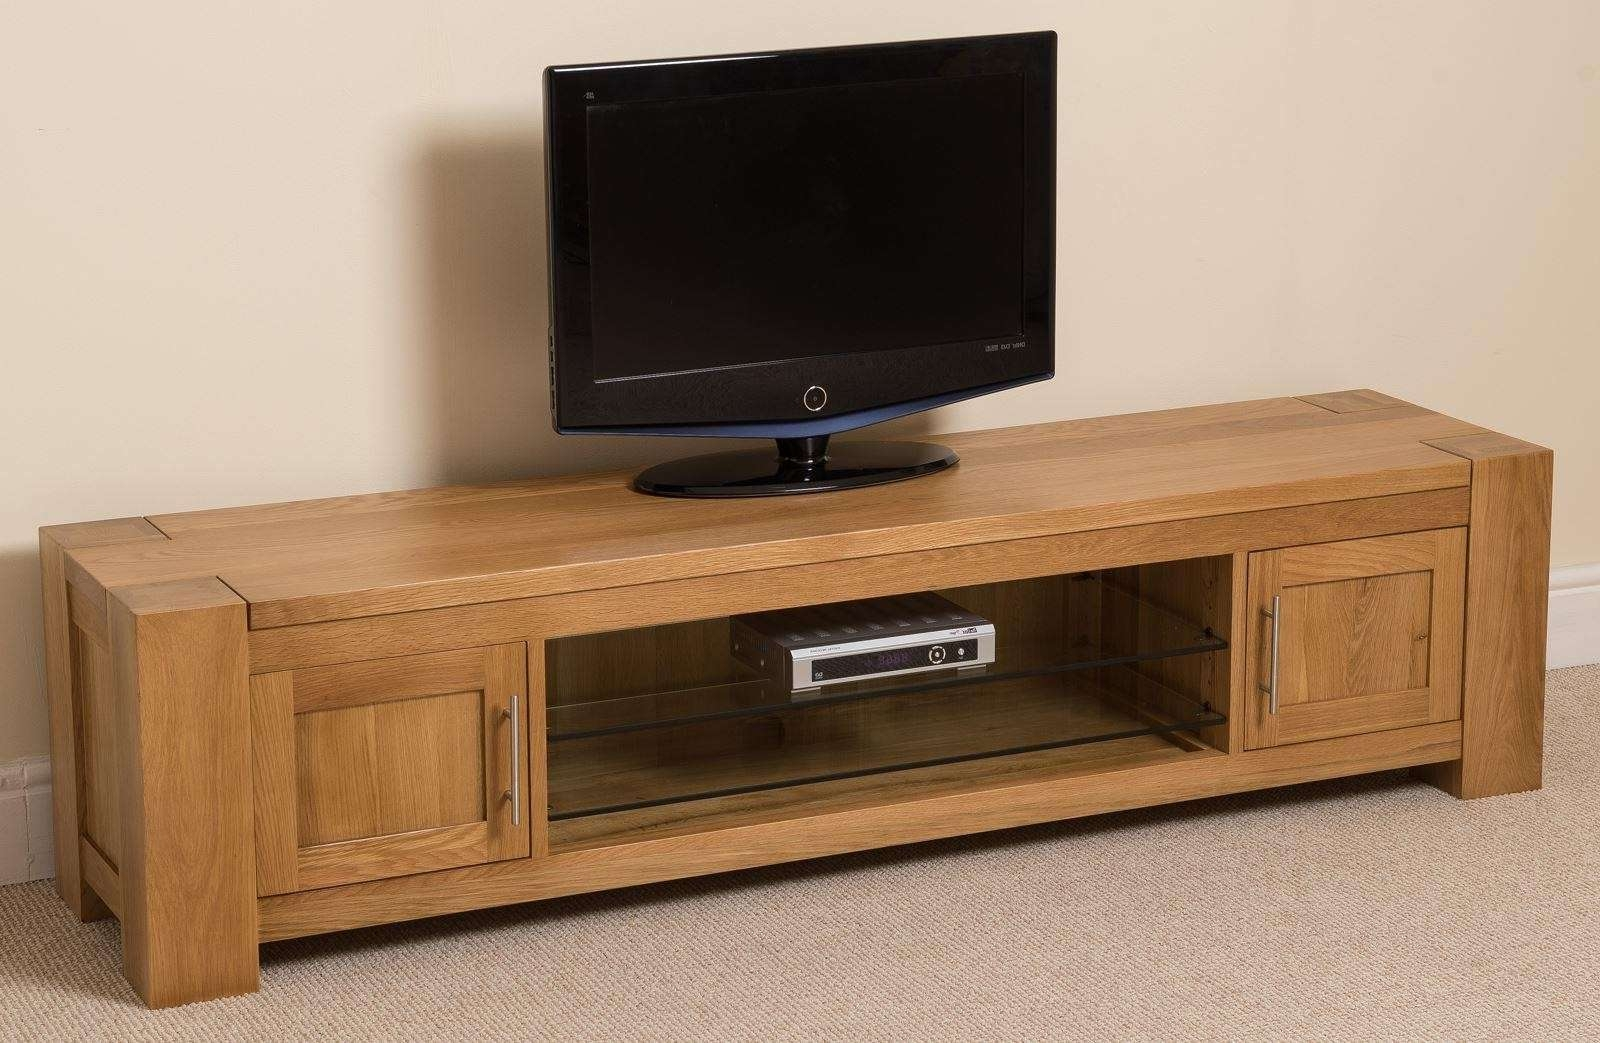 Kuba Solid Widescreen Tv Cabinet | Oak Furniture King For Wide Screen Tv Stands (Gallery 7 of 15)